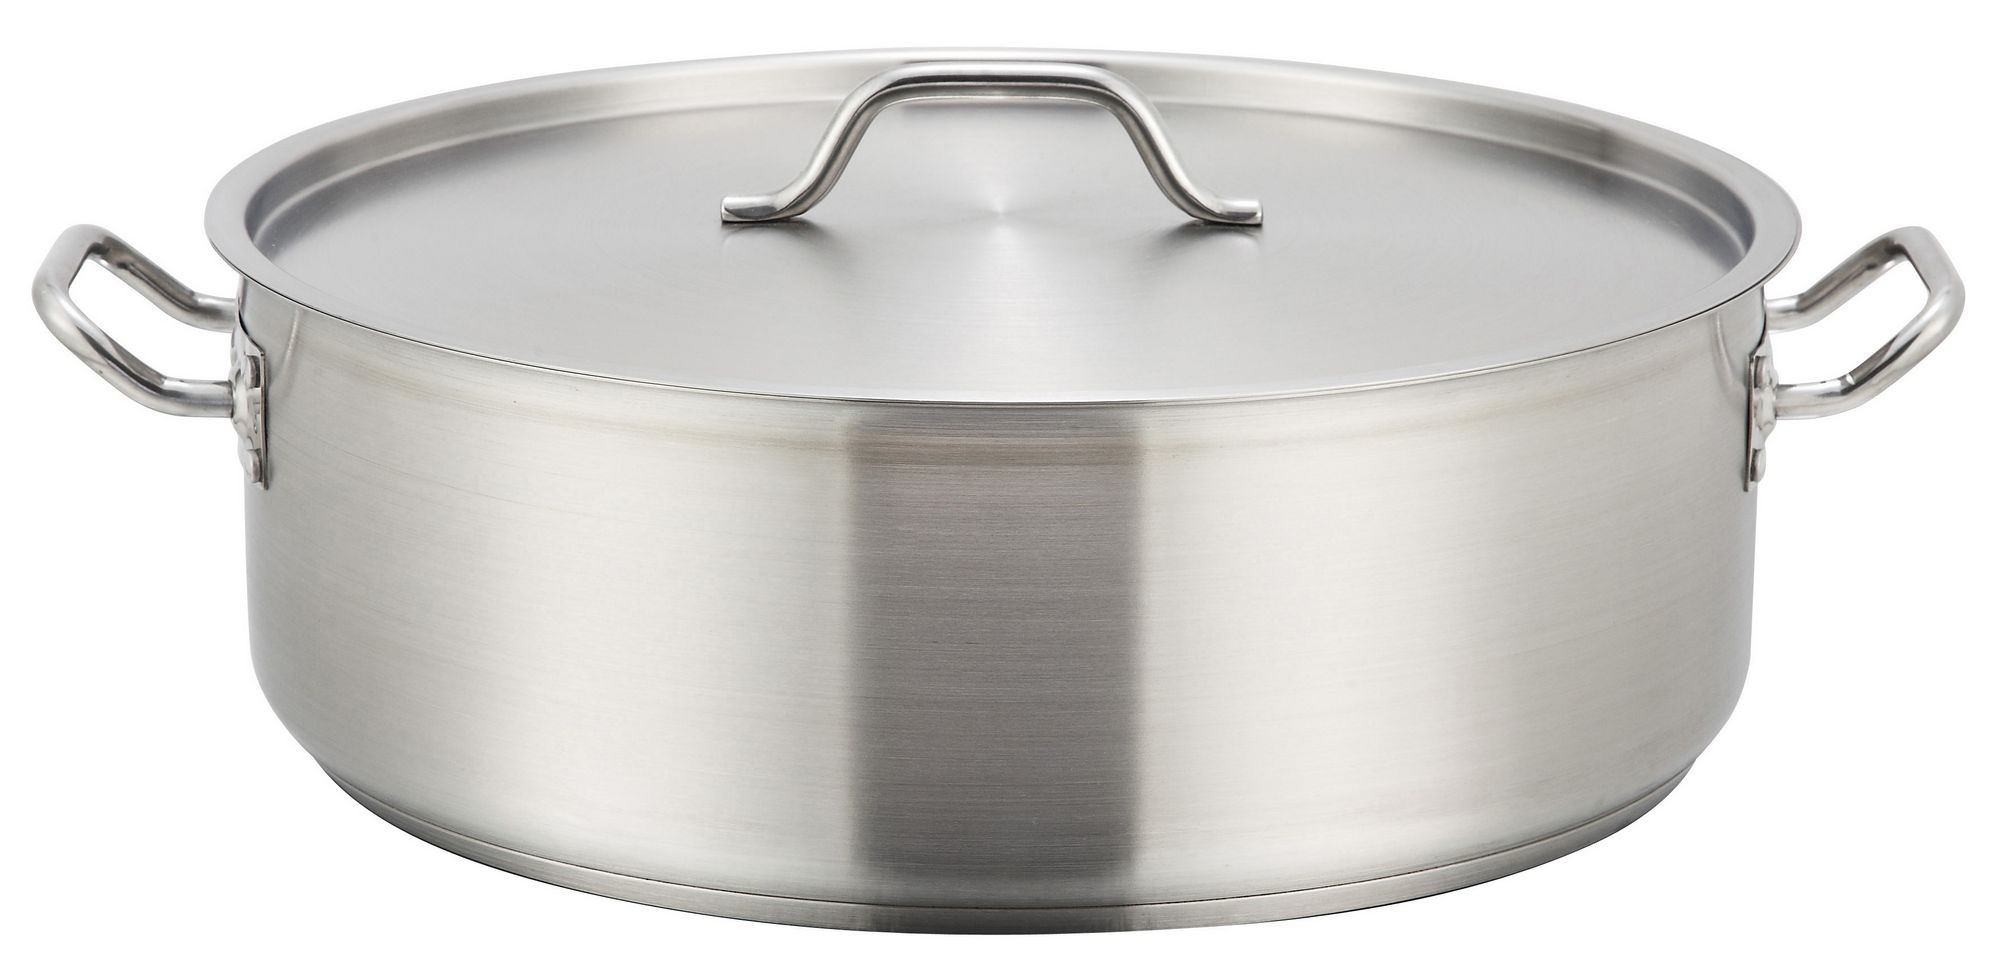 Stainless Steel 20-Quart Brazier with Lid